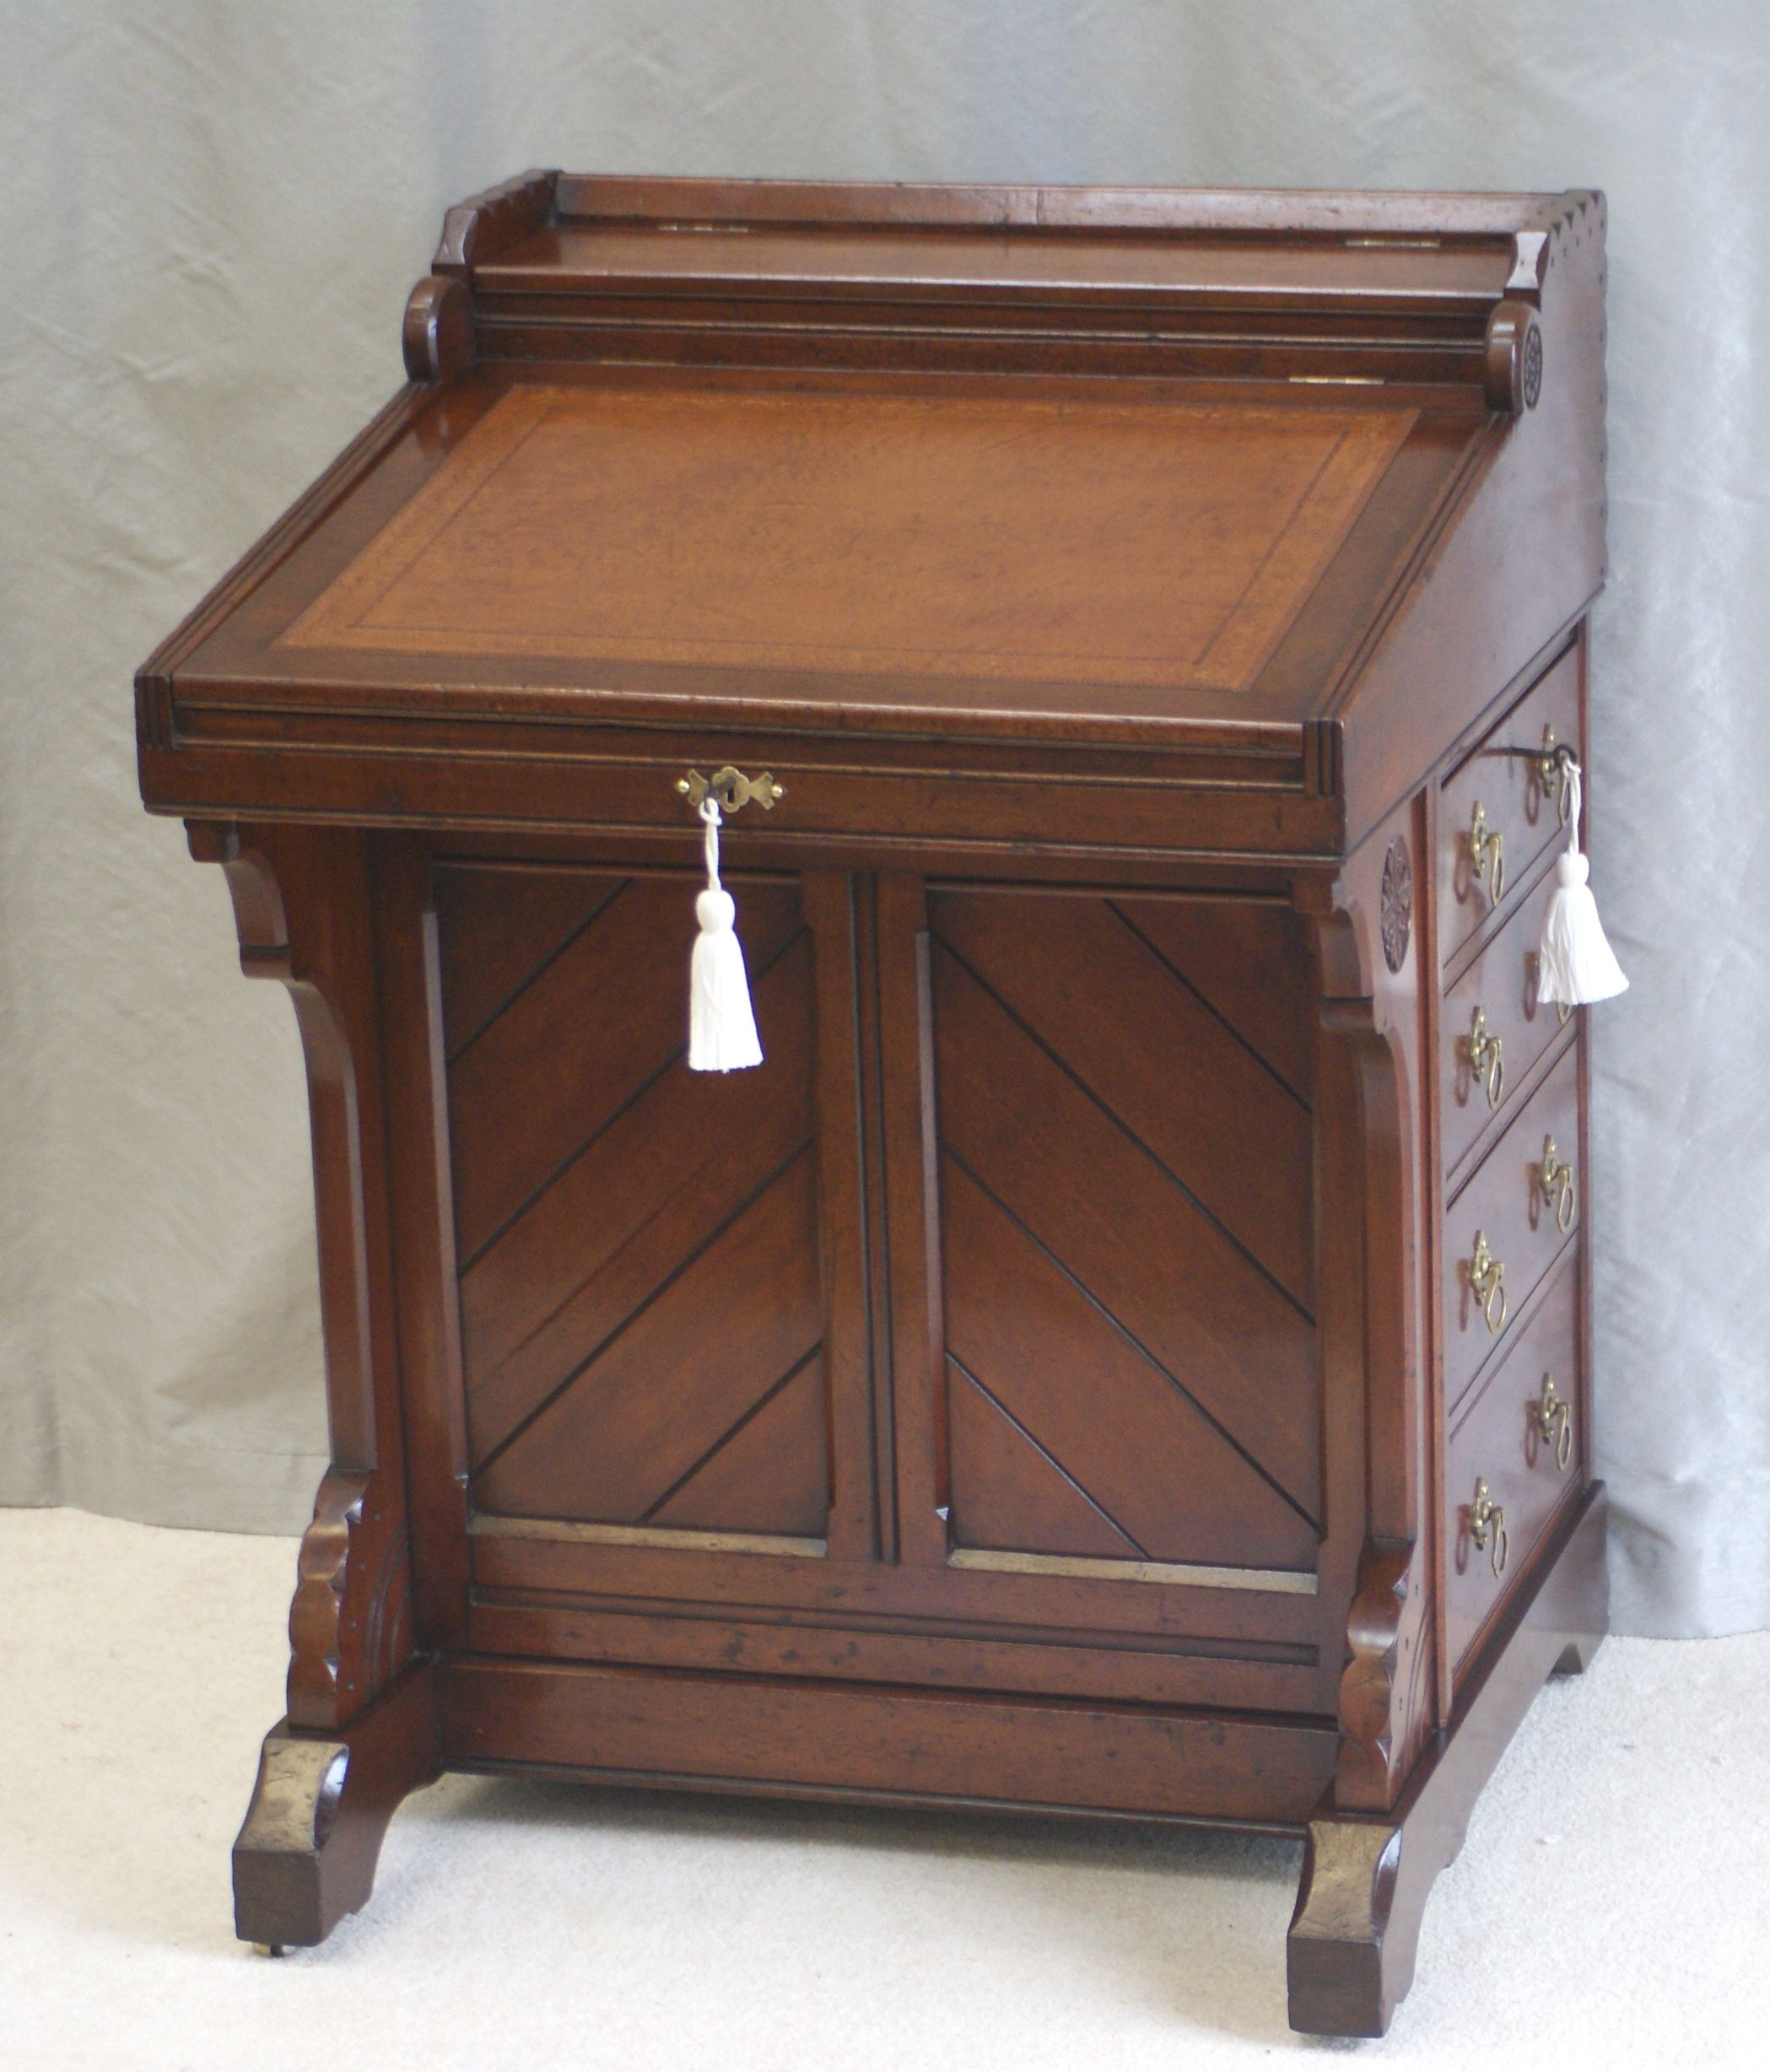 Antique arts and crafts furniture - Finest Quality Solid Walnut Antique Arts Crafts Davenport Writing Desk Four Working Drawers To